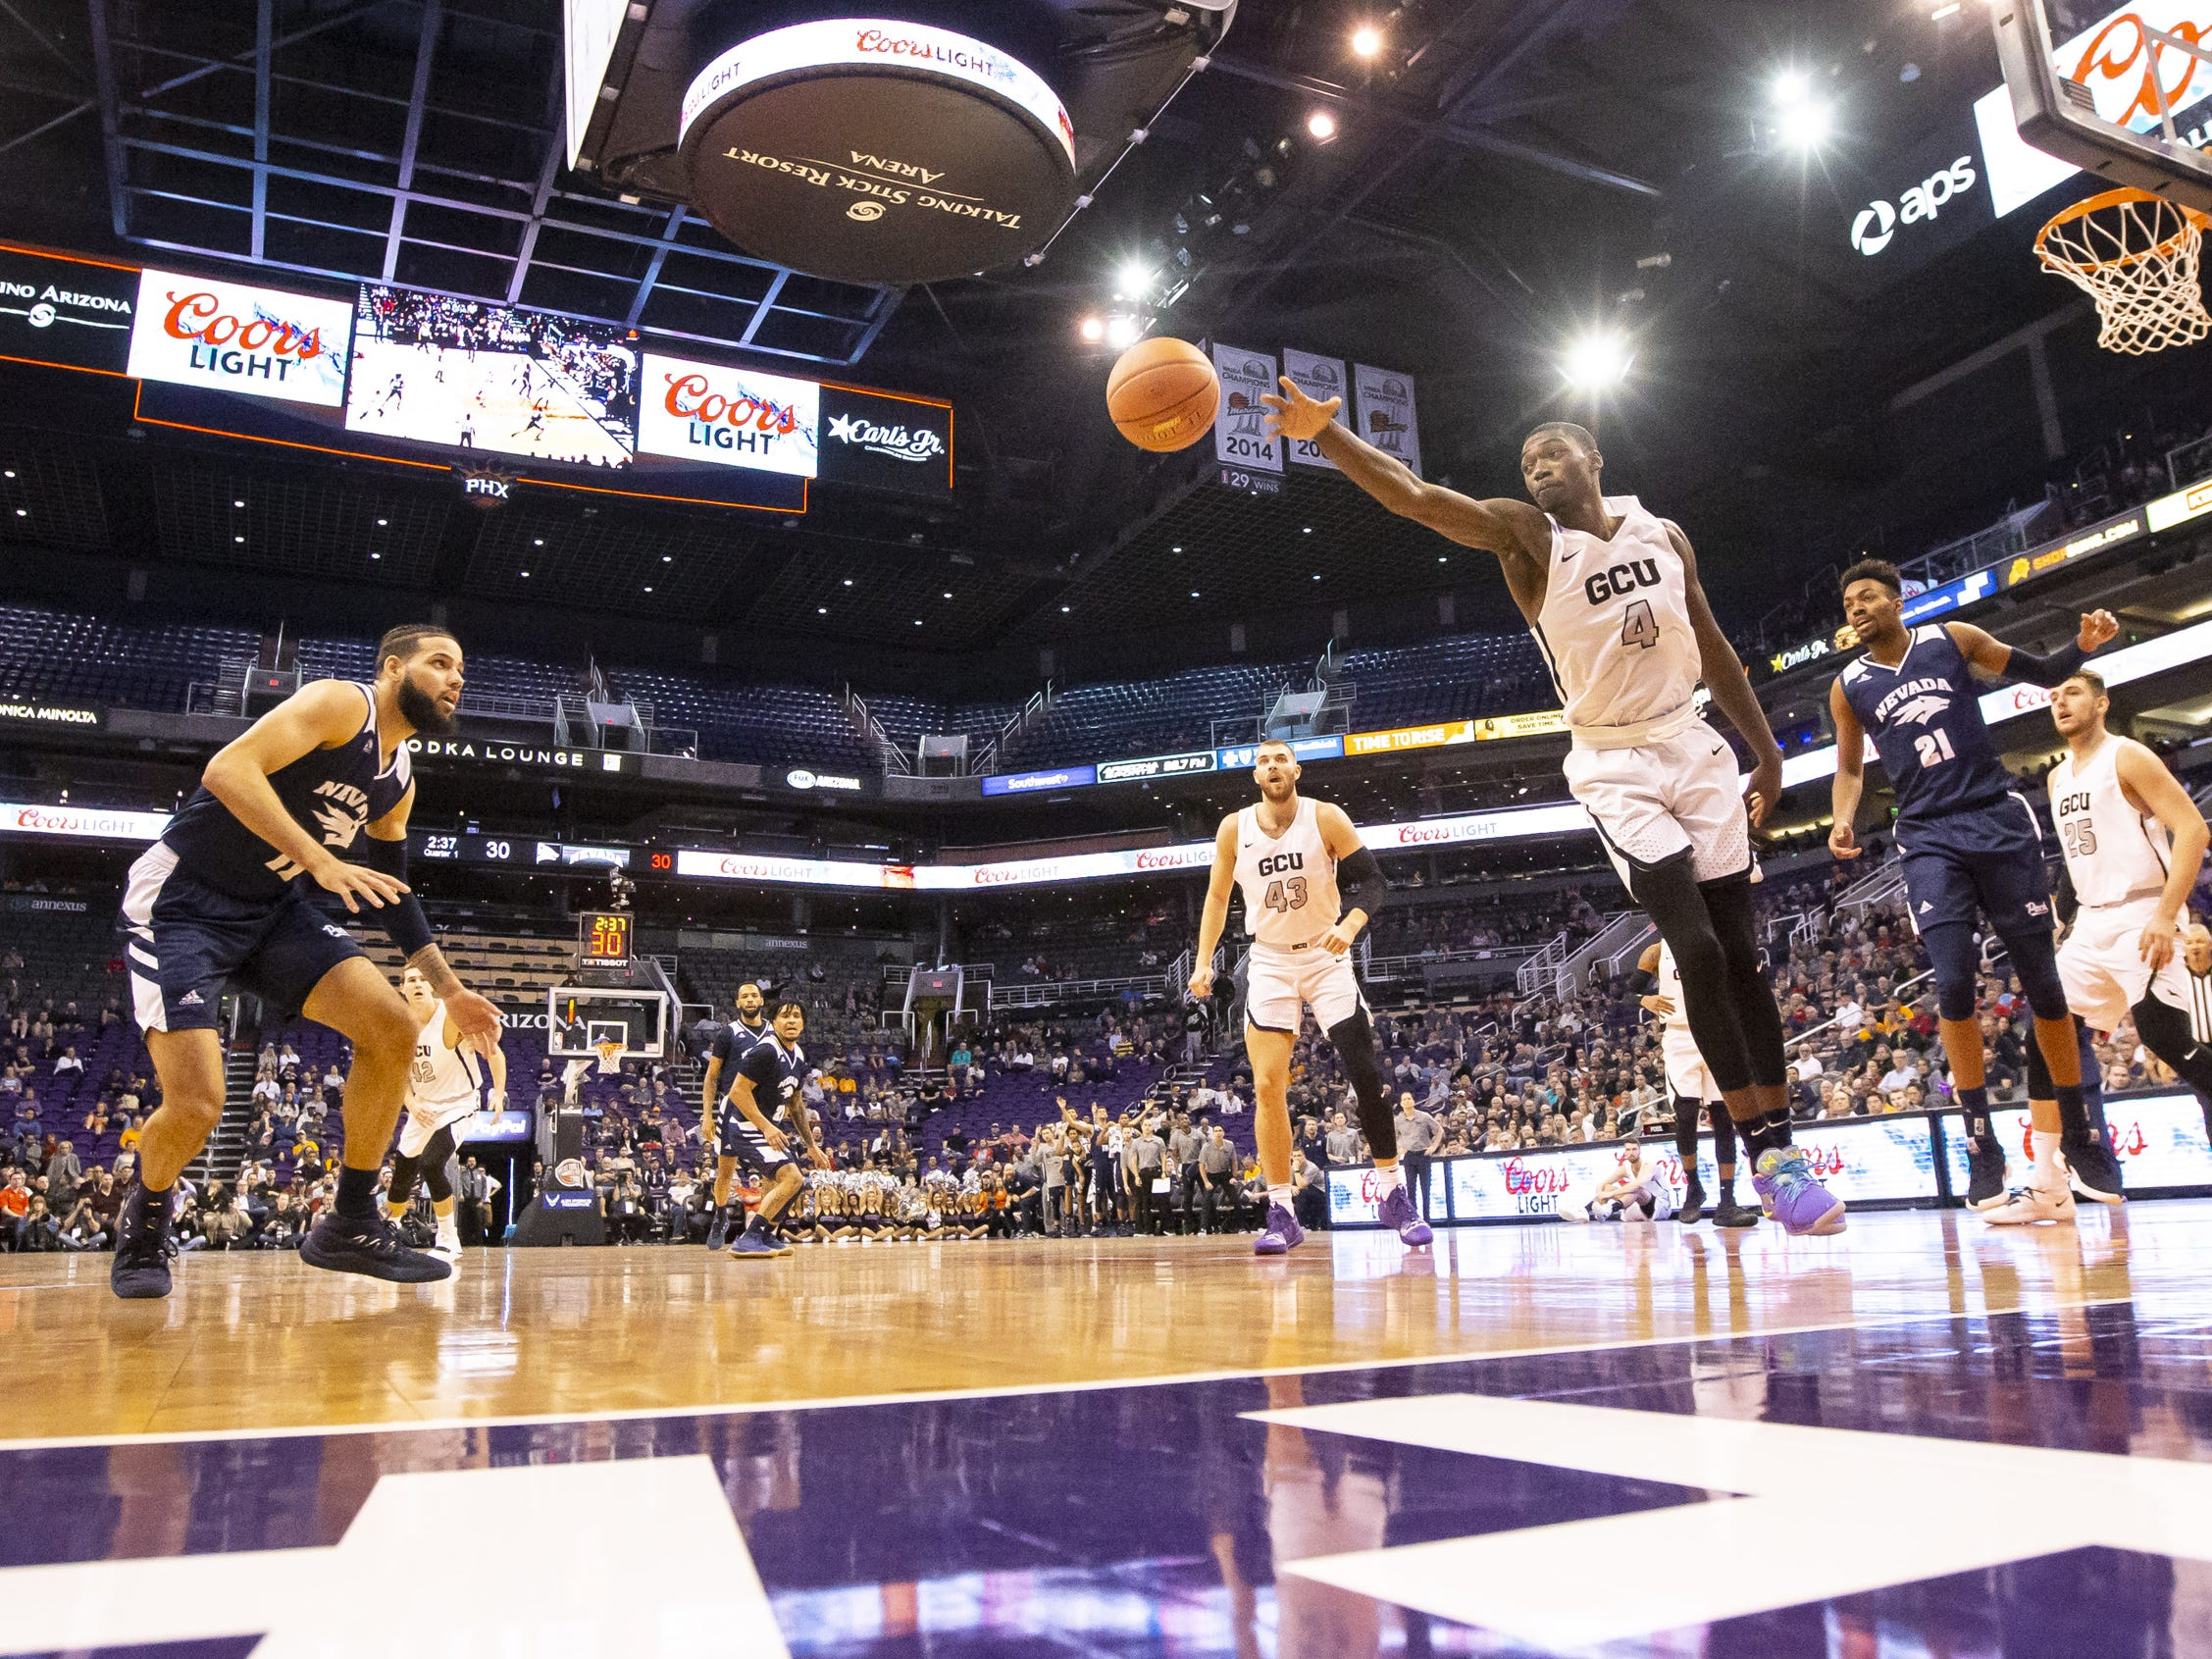 Forward Oscar Frayer (4) of the Grand Canyon Antelopes reaches for a wild pass against Nevada Wolf Pack during the 2018 Jerry Colangelo Classic at Talking Stick Resort Arena on Sunday, December 9, 2018 in Phoenix, Arizona.